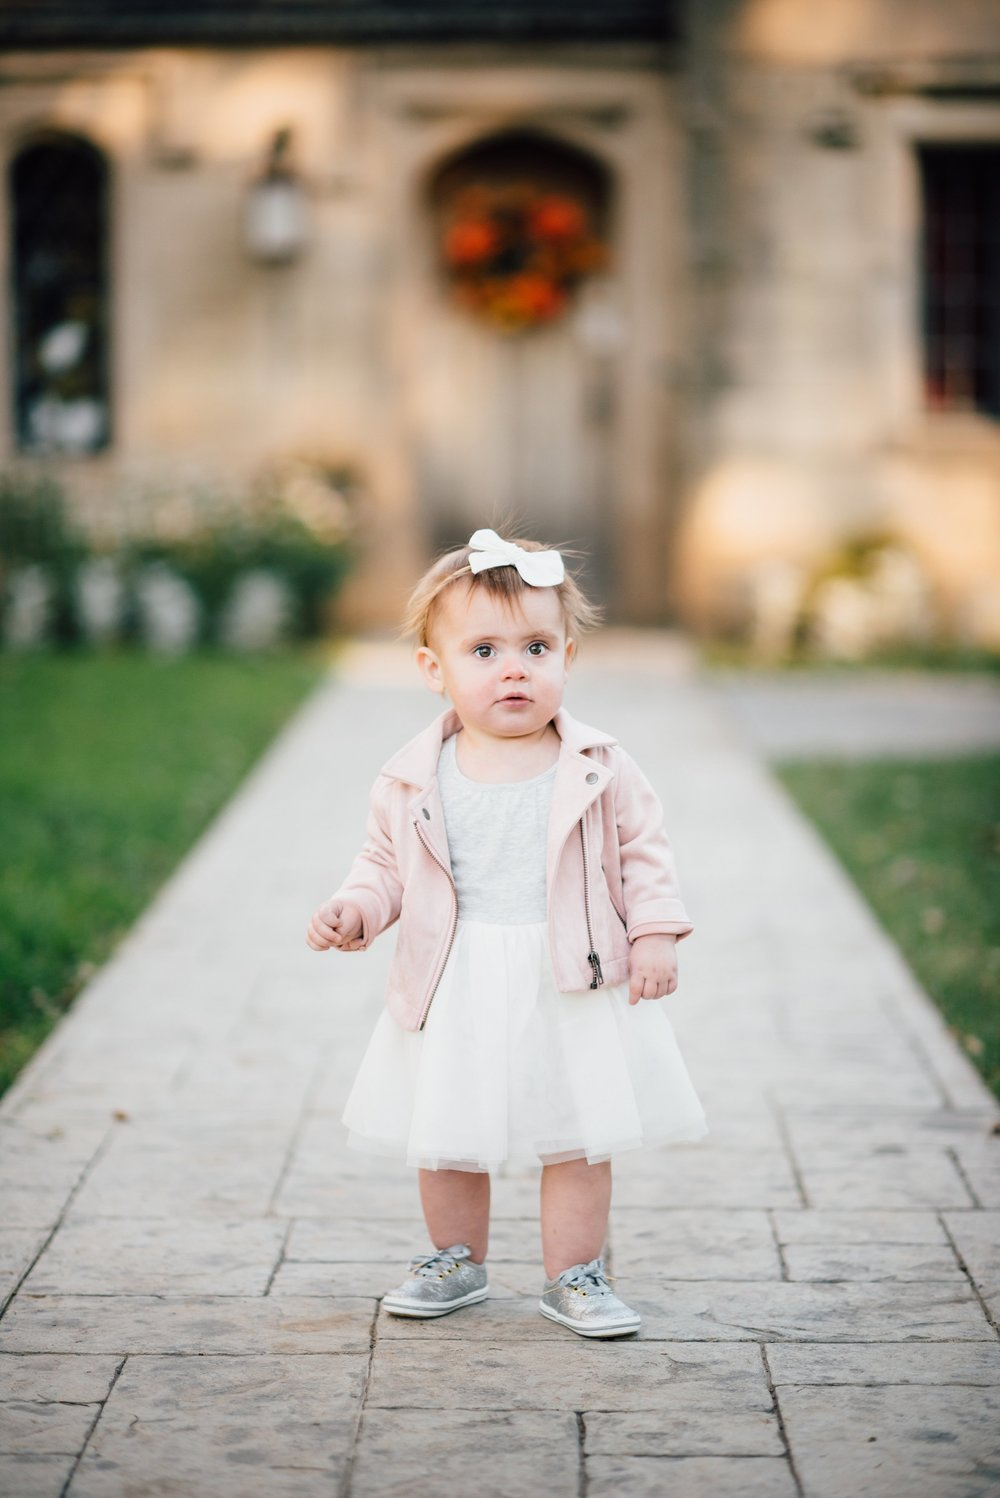 Family Photography Hartwood Acres Mansion Pittsburgh Rachel Rossetti_0301.jpg